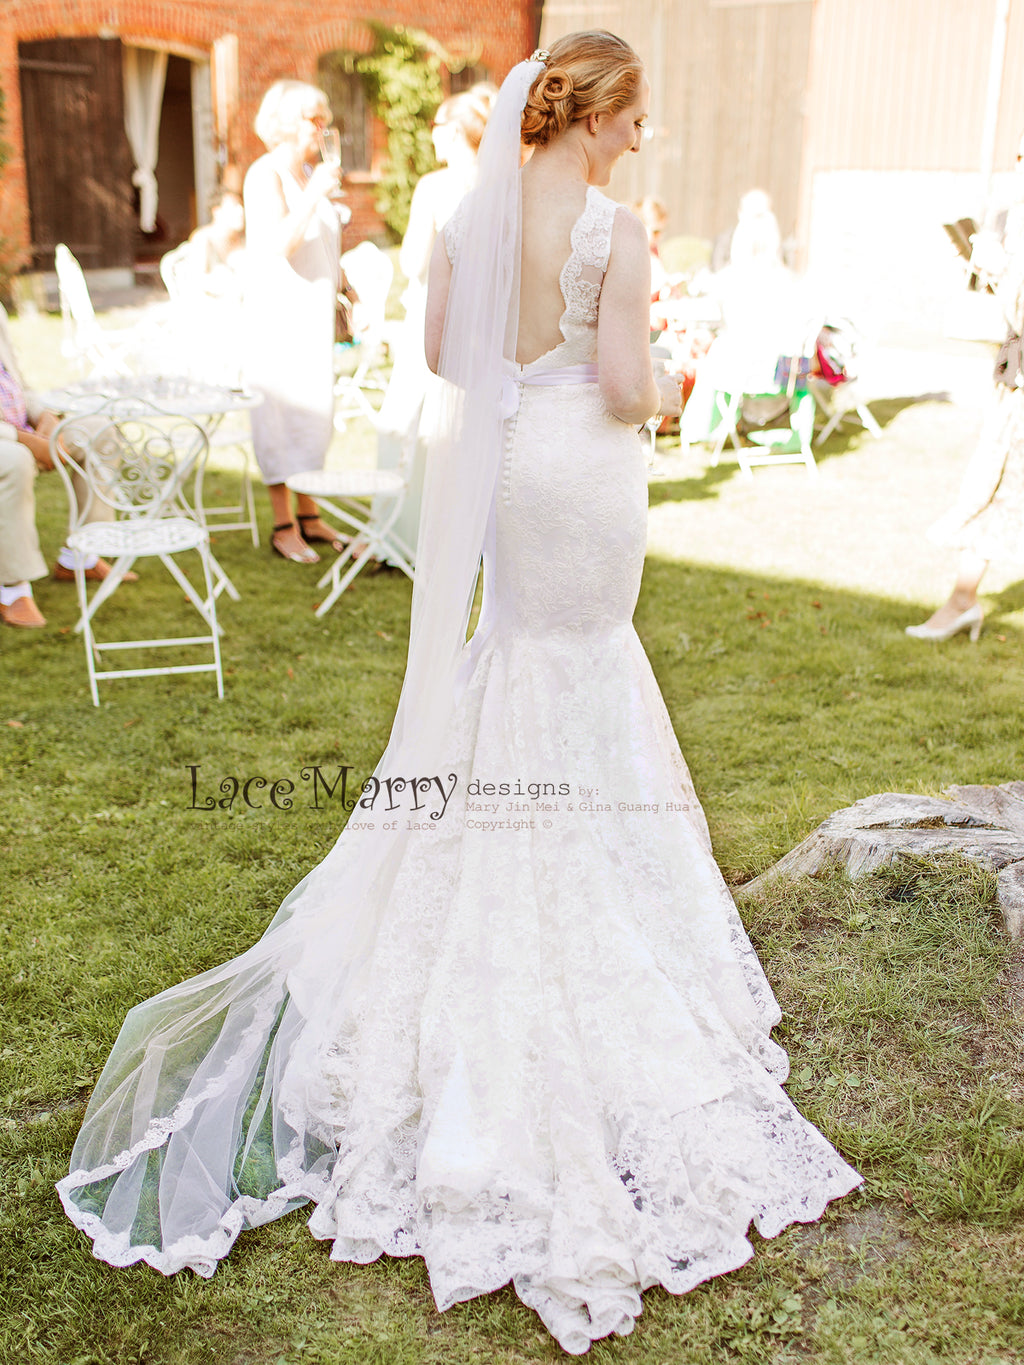 Mermaid Lace Wedding Dress with Deep VCut Open Back, Illusion Boat Neckline Design, Sweetheart Underlay with Scalloped Trim and Chapel Train